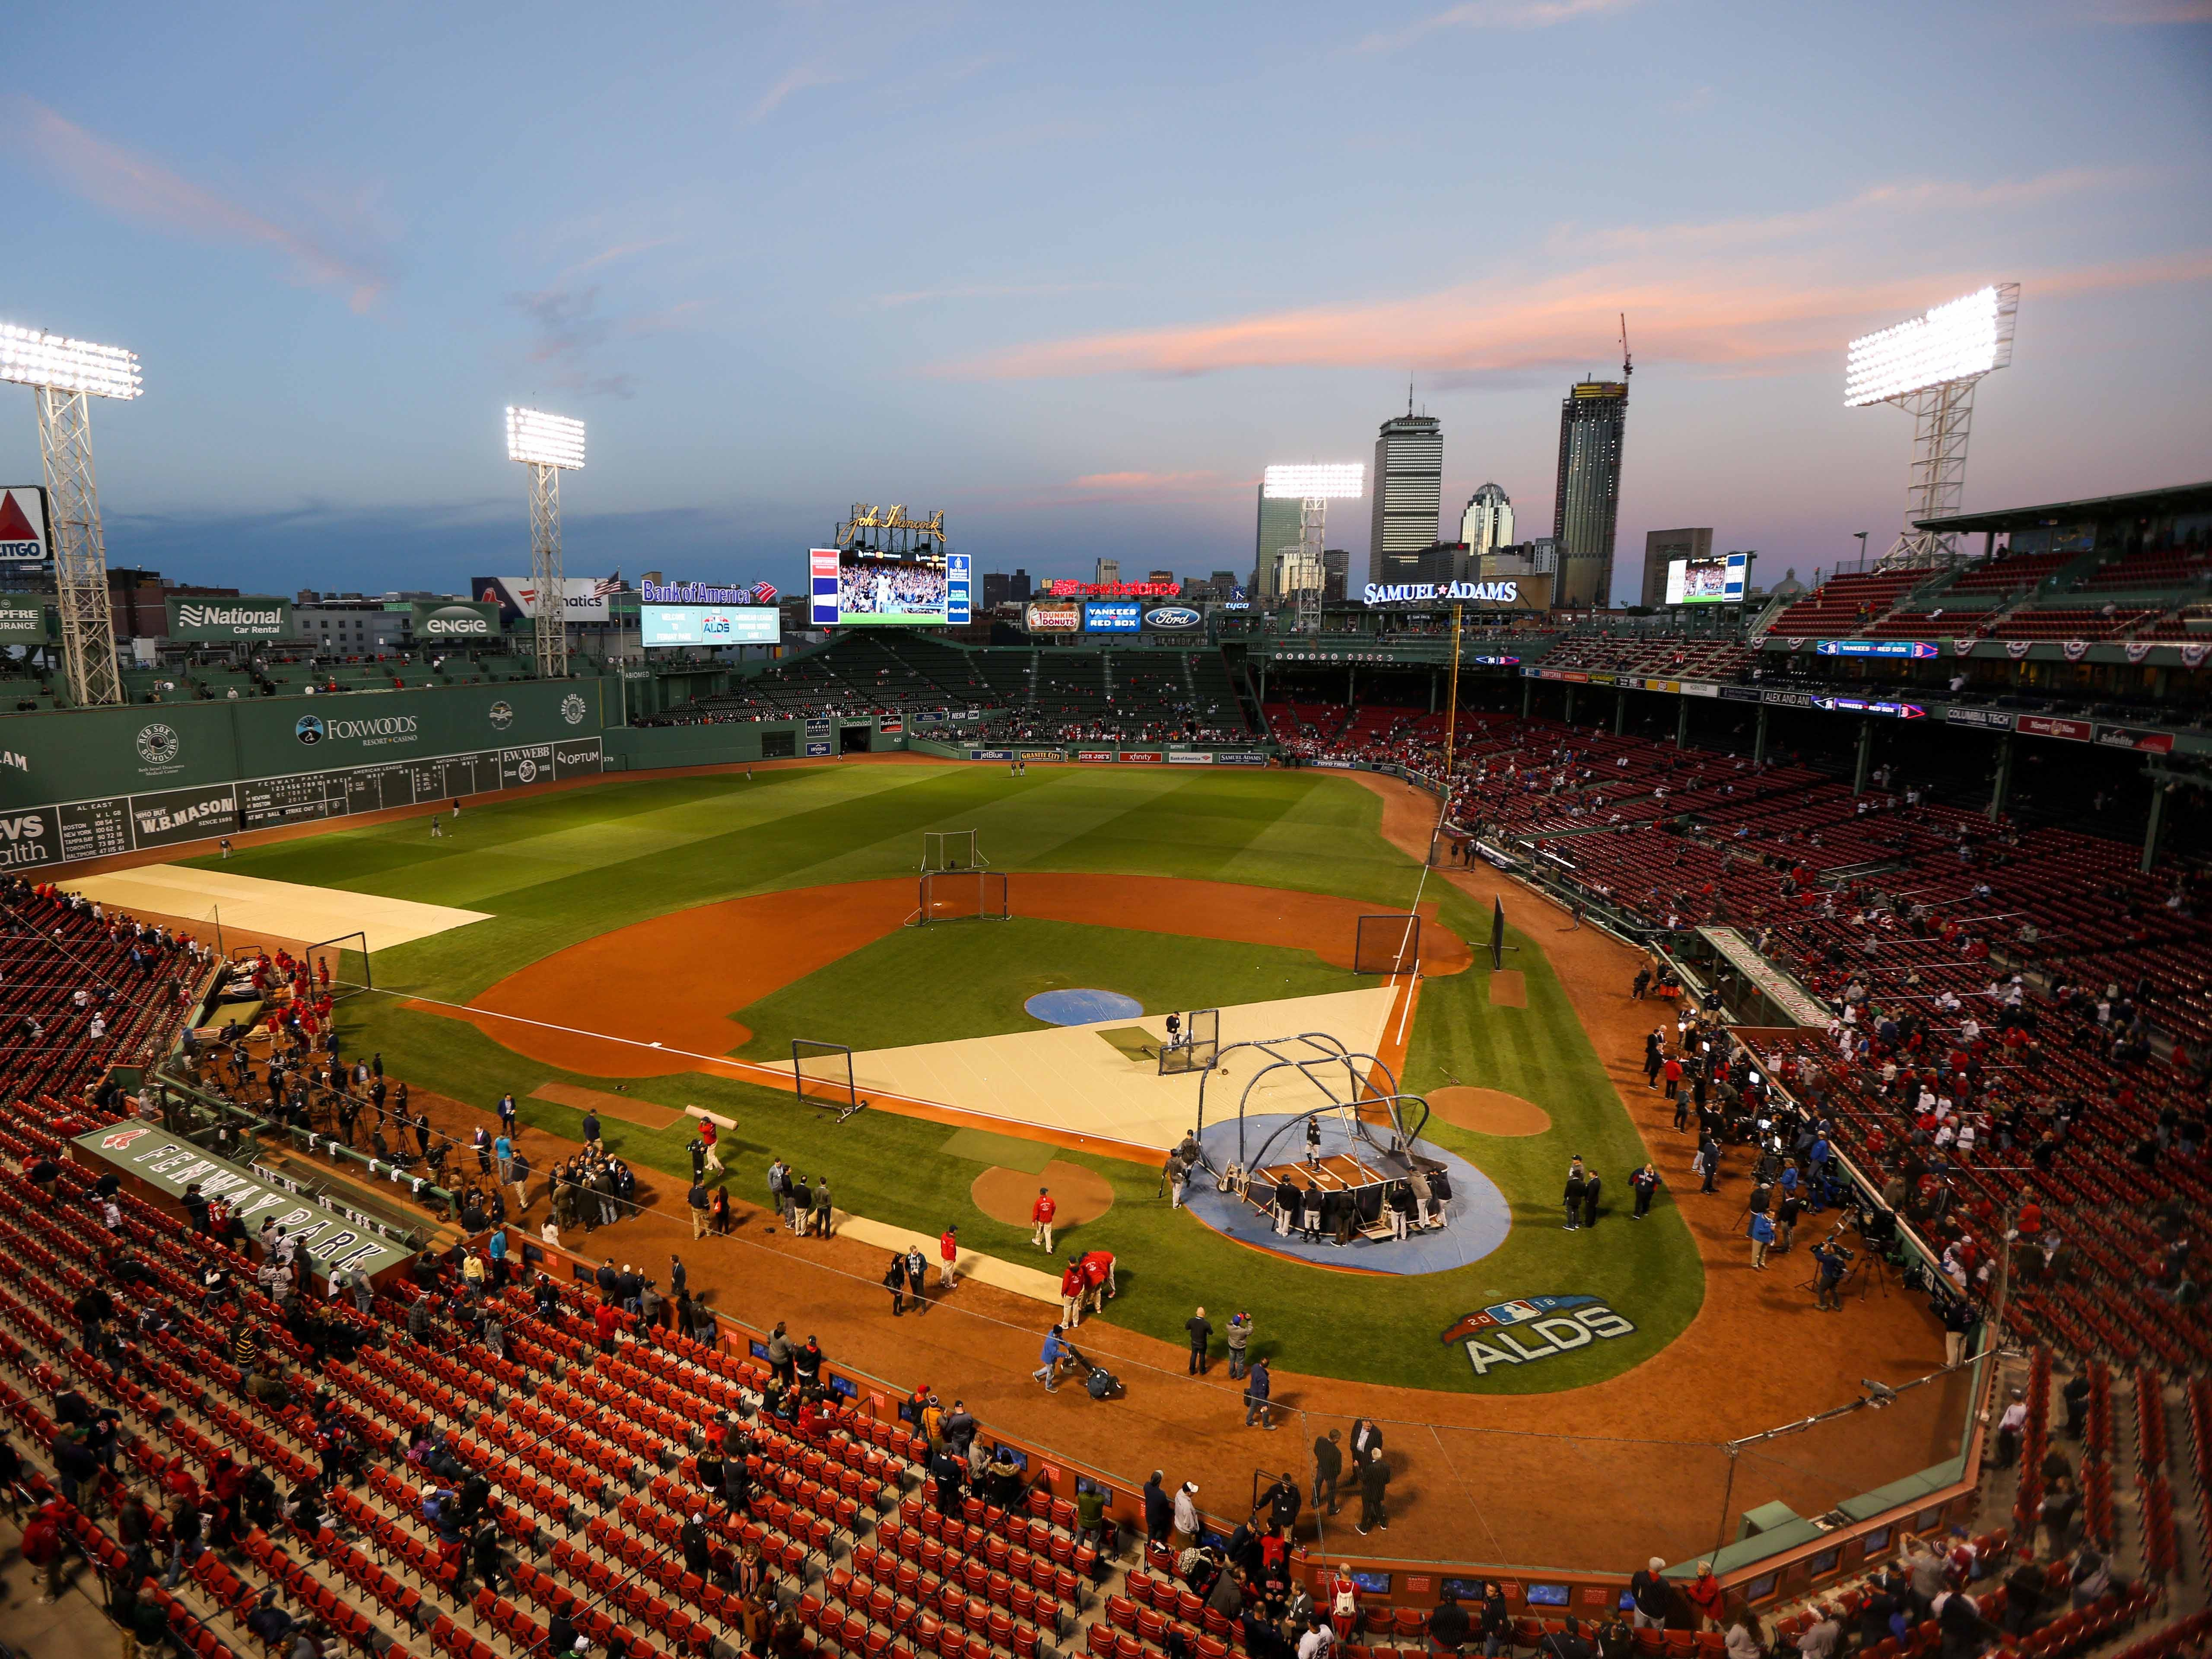 ALDS Game 1: Fenway Park, home of the Red Sox.